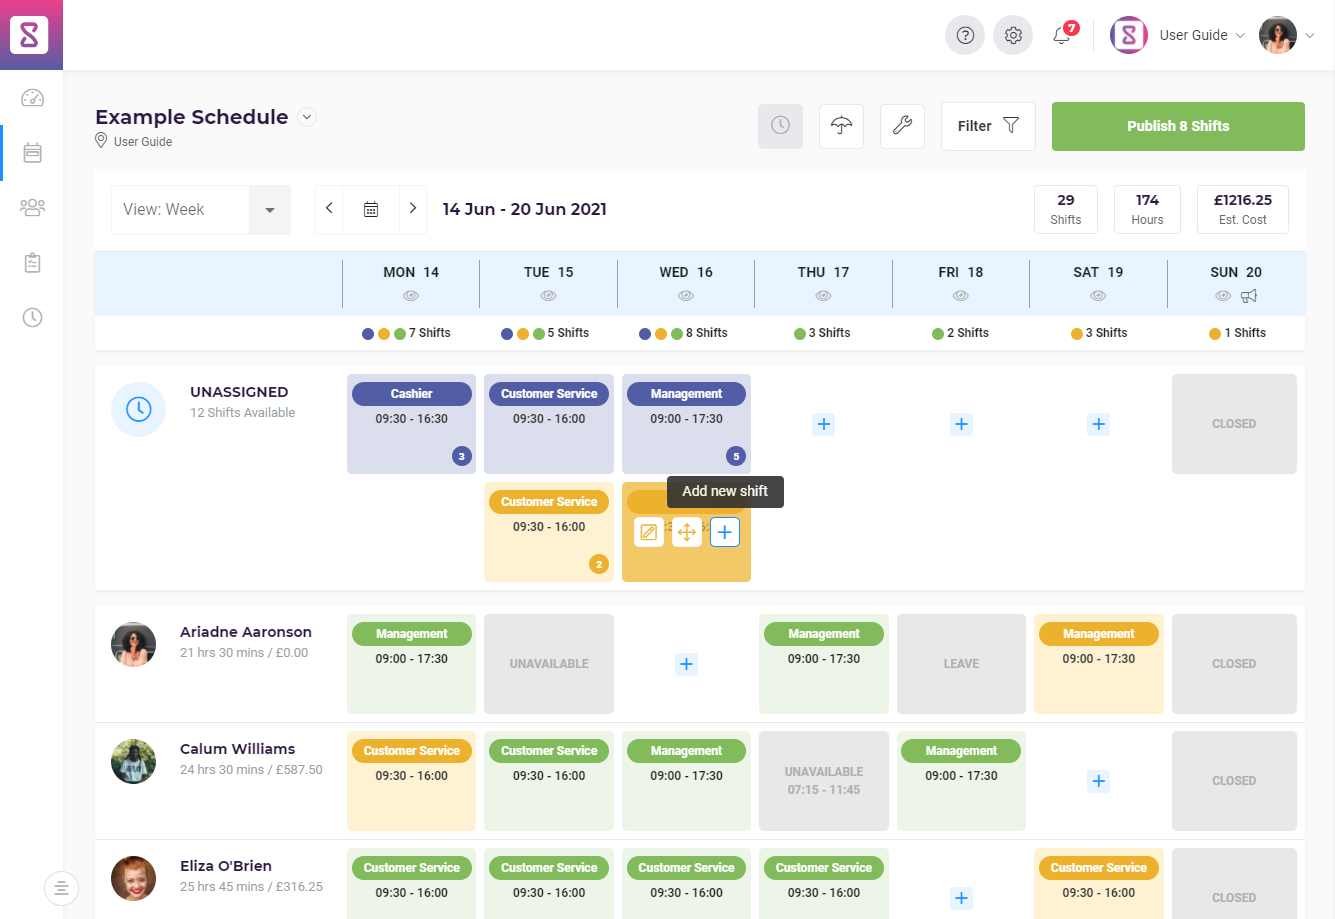 A schedule created on Shiftie with a combination of assigned, unassigned, and unpublished shifts